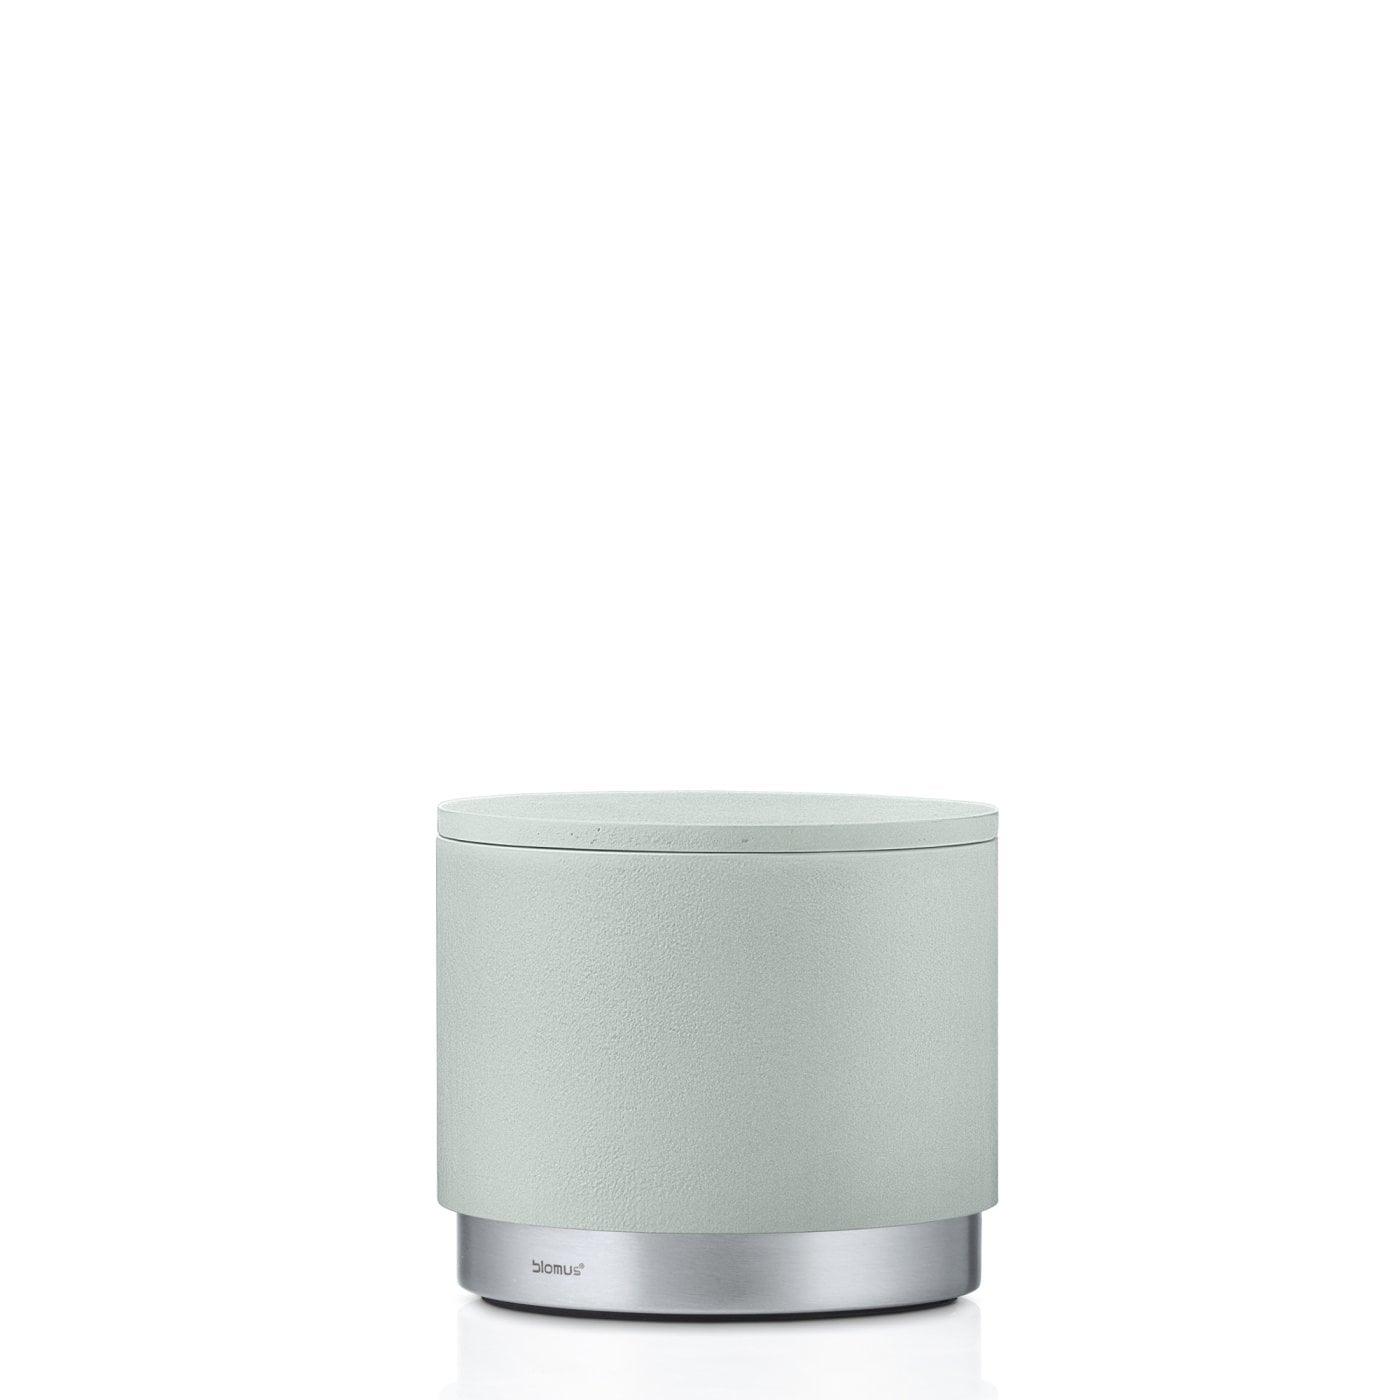 ARA SOAP STORAGE CANISTER BOX - Icegreen